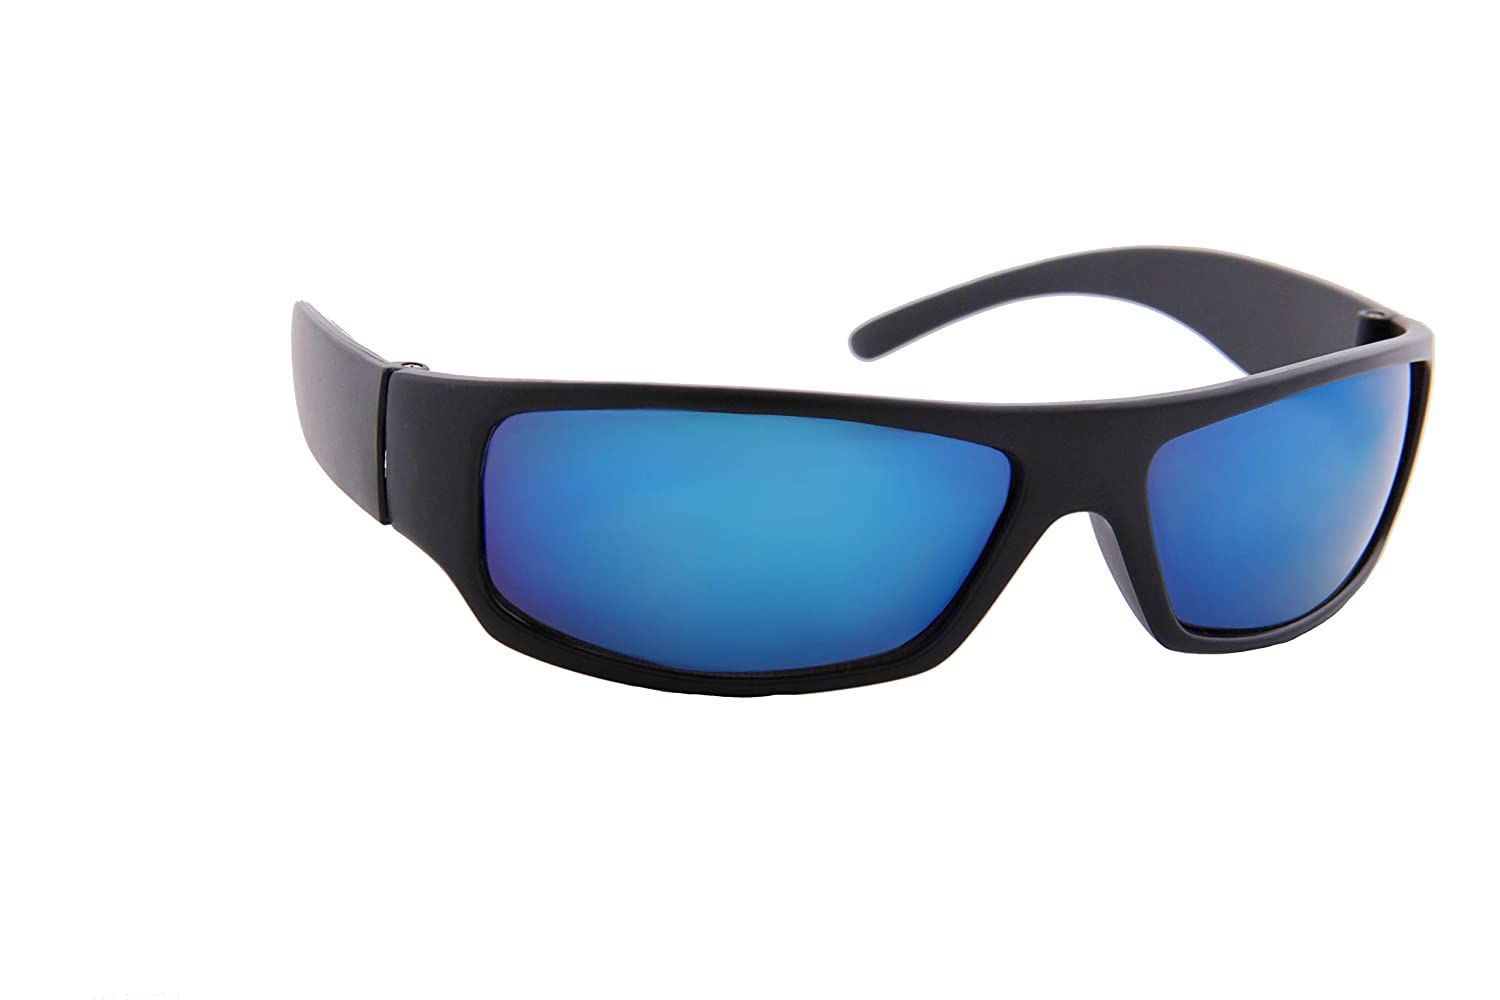 Mirror Lens Matte Frame Outdoor Athletic Sport Sunglasses IVOZZO